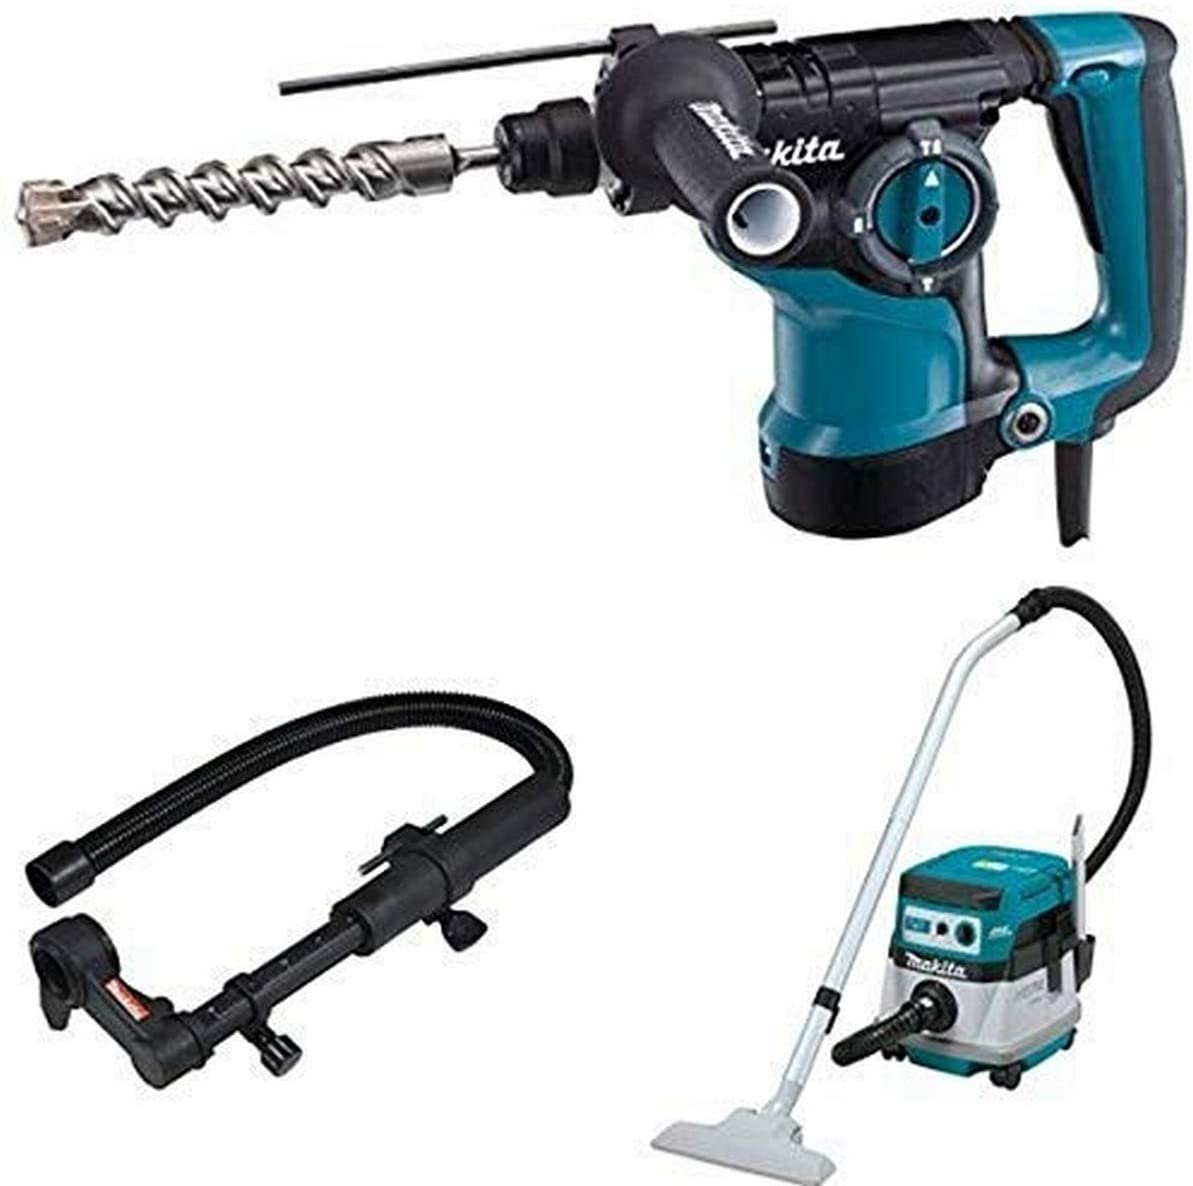 Makita HR2811F 1-1 discount 8-Inch Rotary bits SDS-PLUS Hammer accepts Super special price